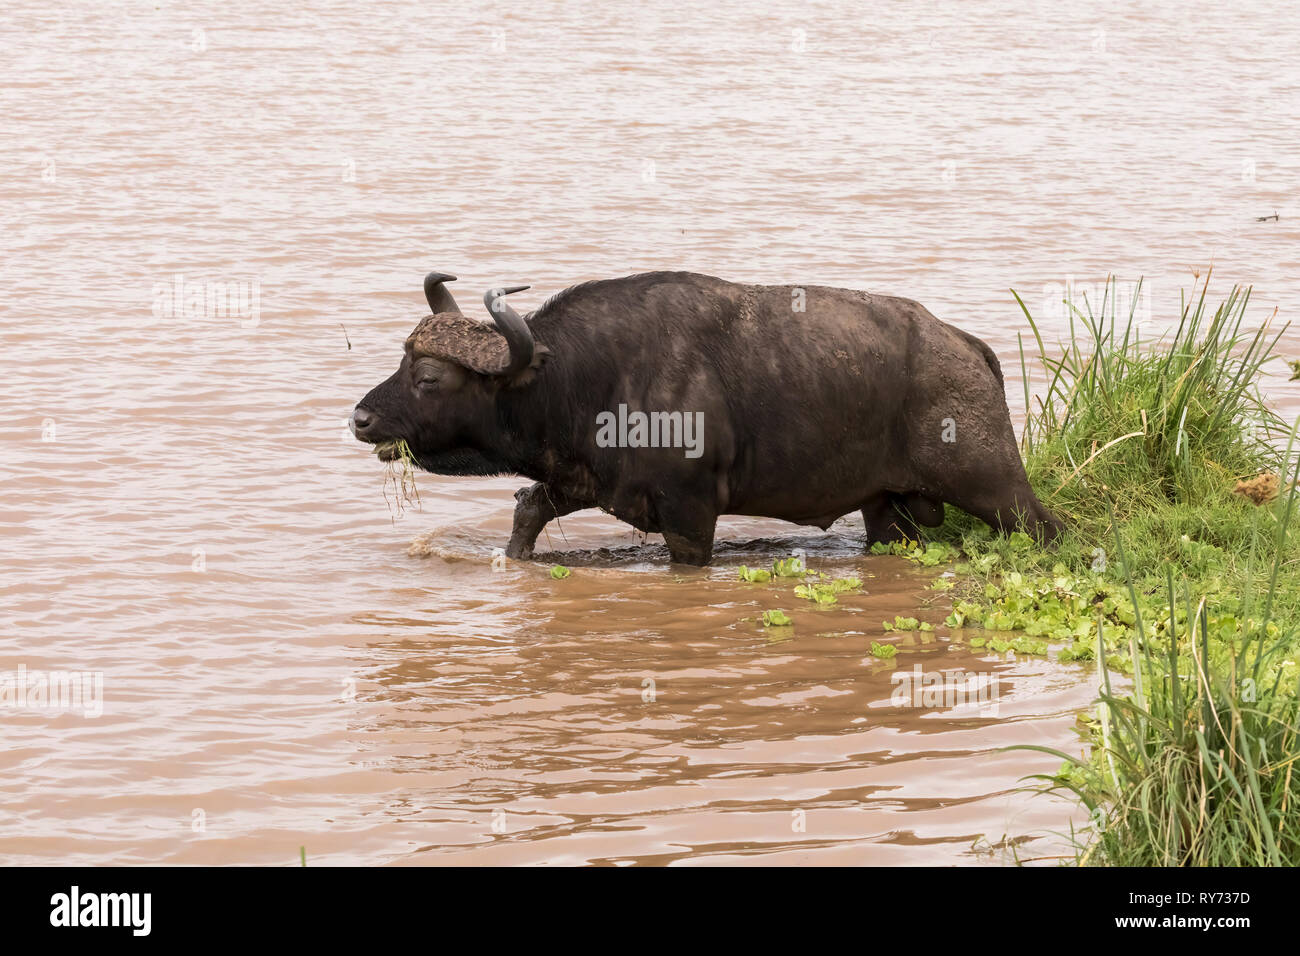 Cape Buffalo (Syncerus caffer) feeding on grass in a pond in Lake Manyara National Park, Tanzania - Stock Image